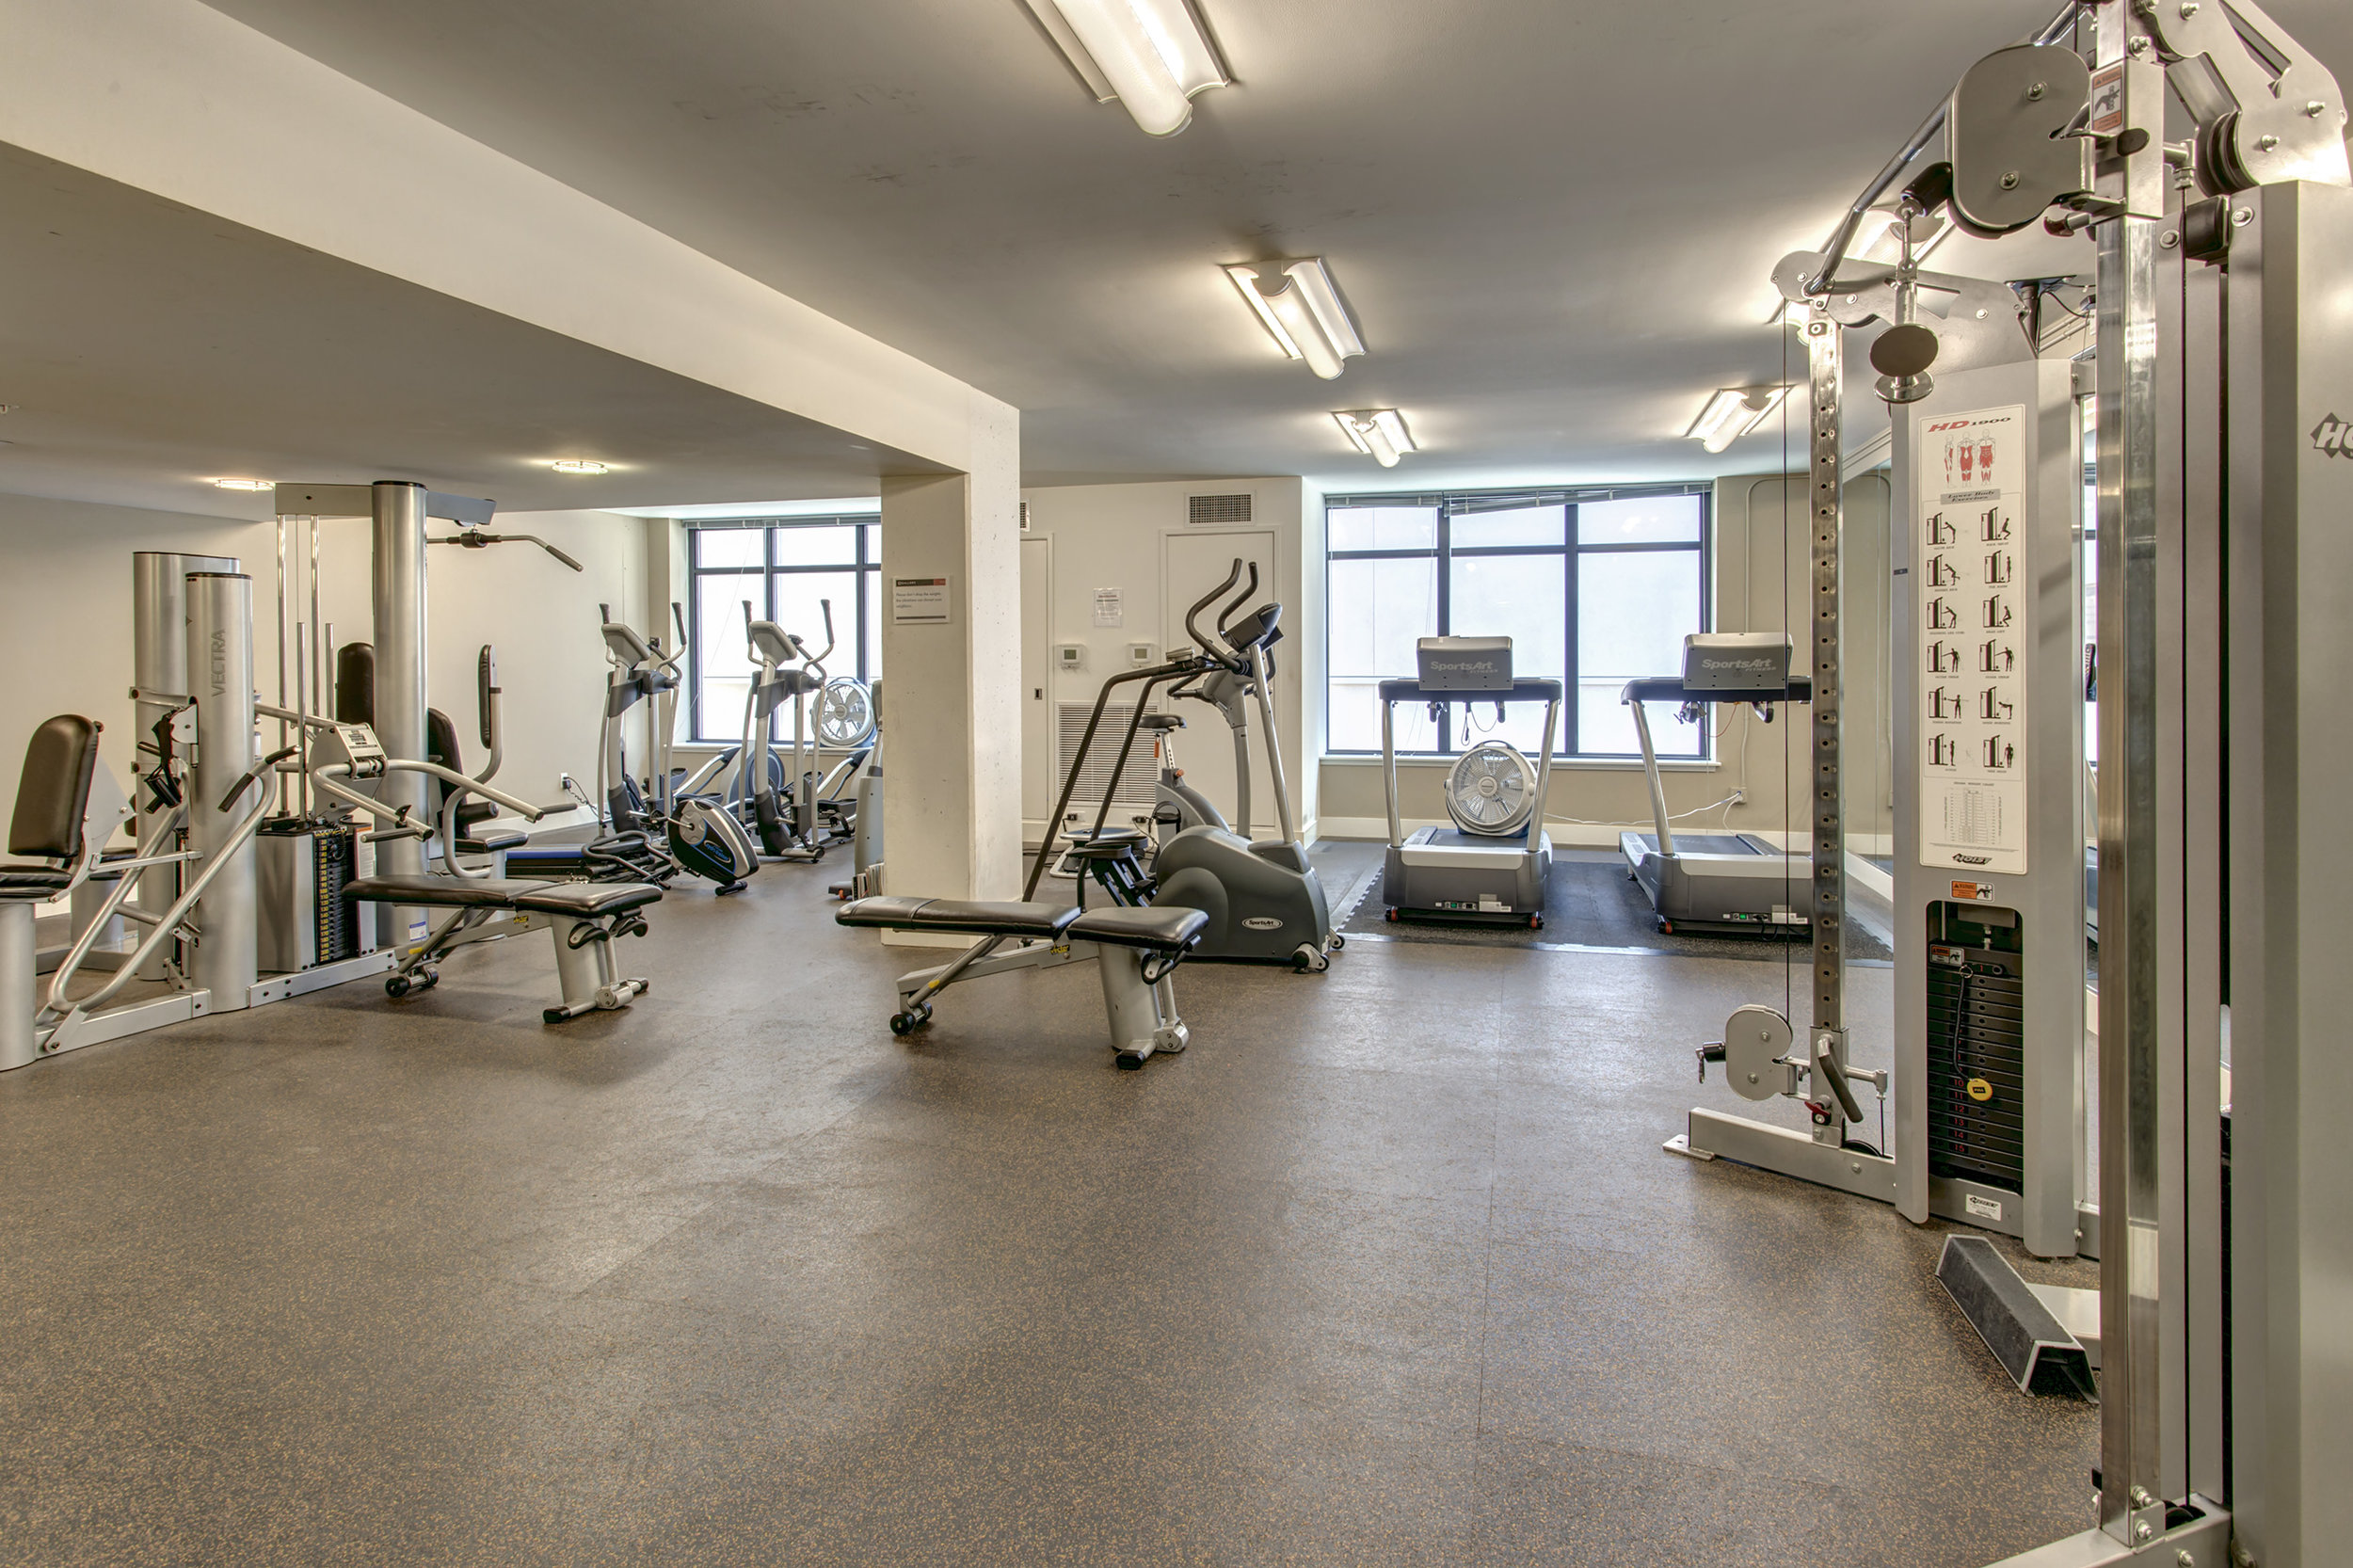 Gym! There's a gym! Lift them gym things.